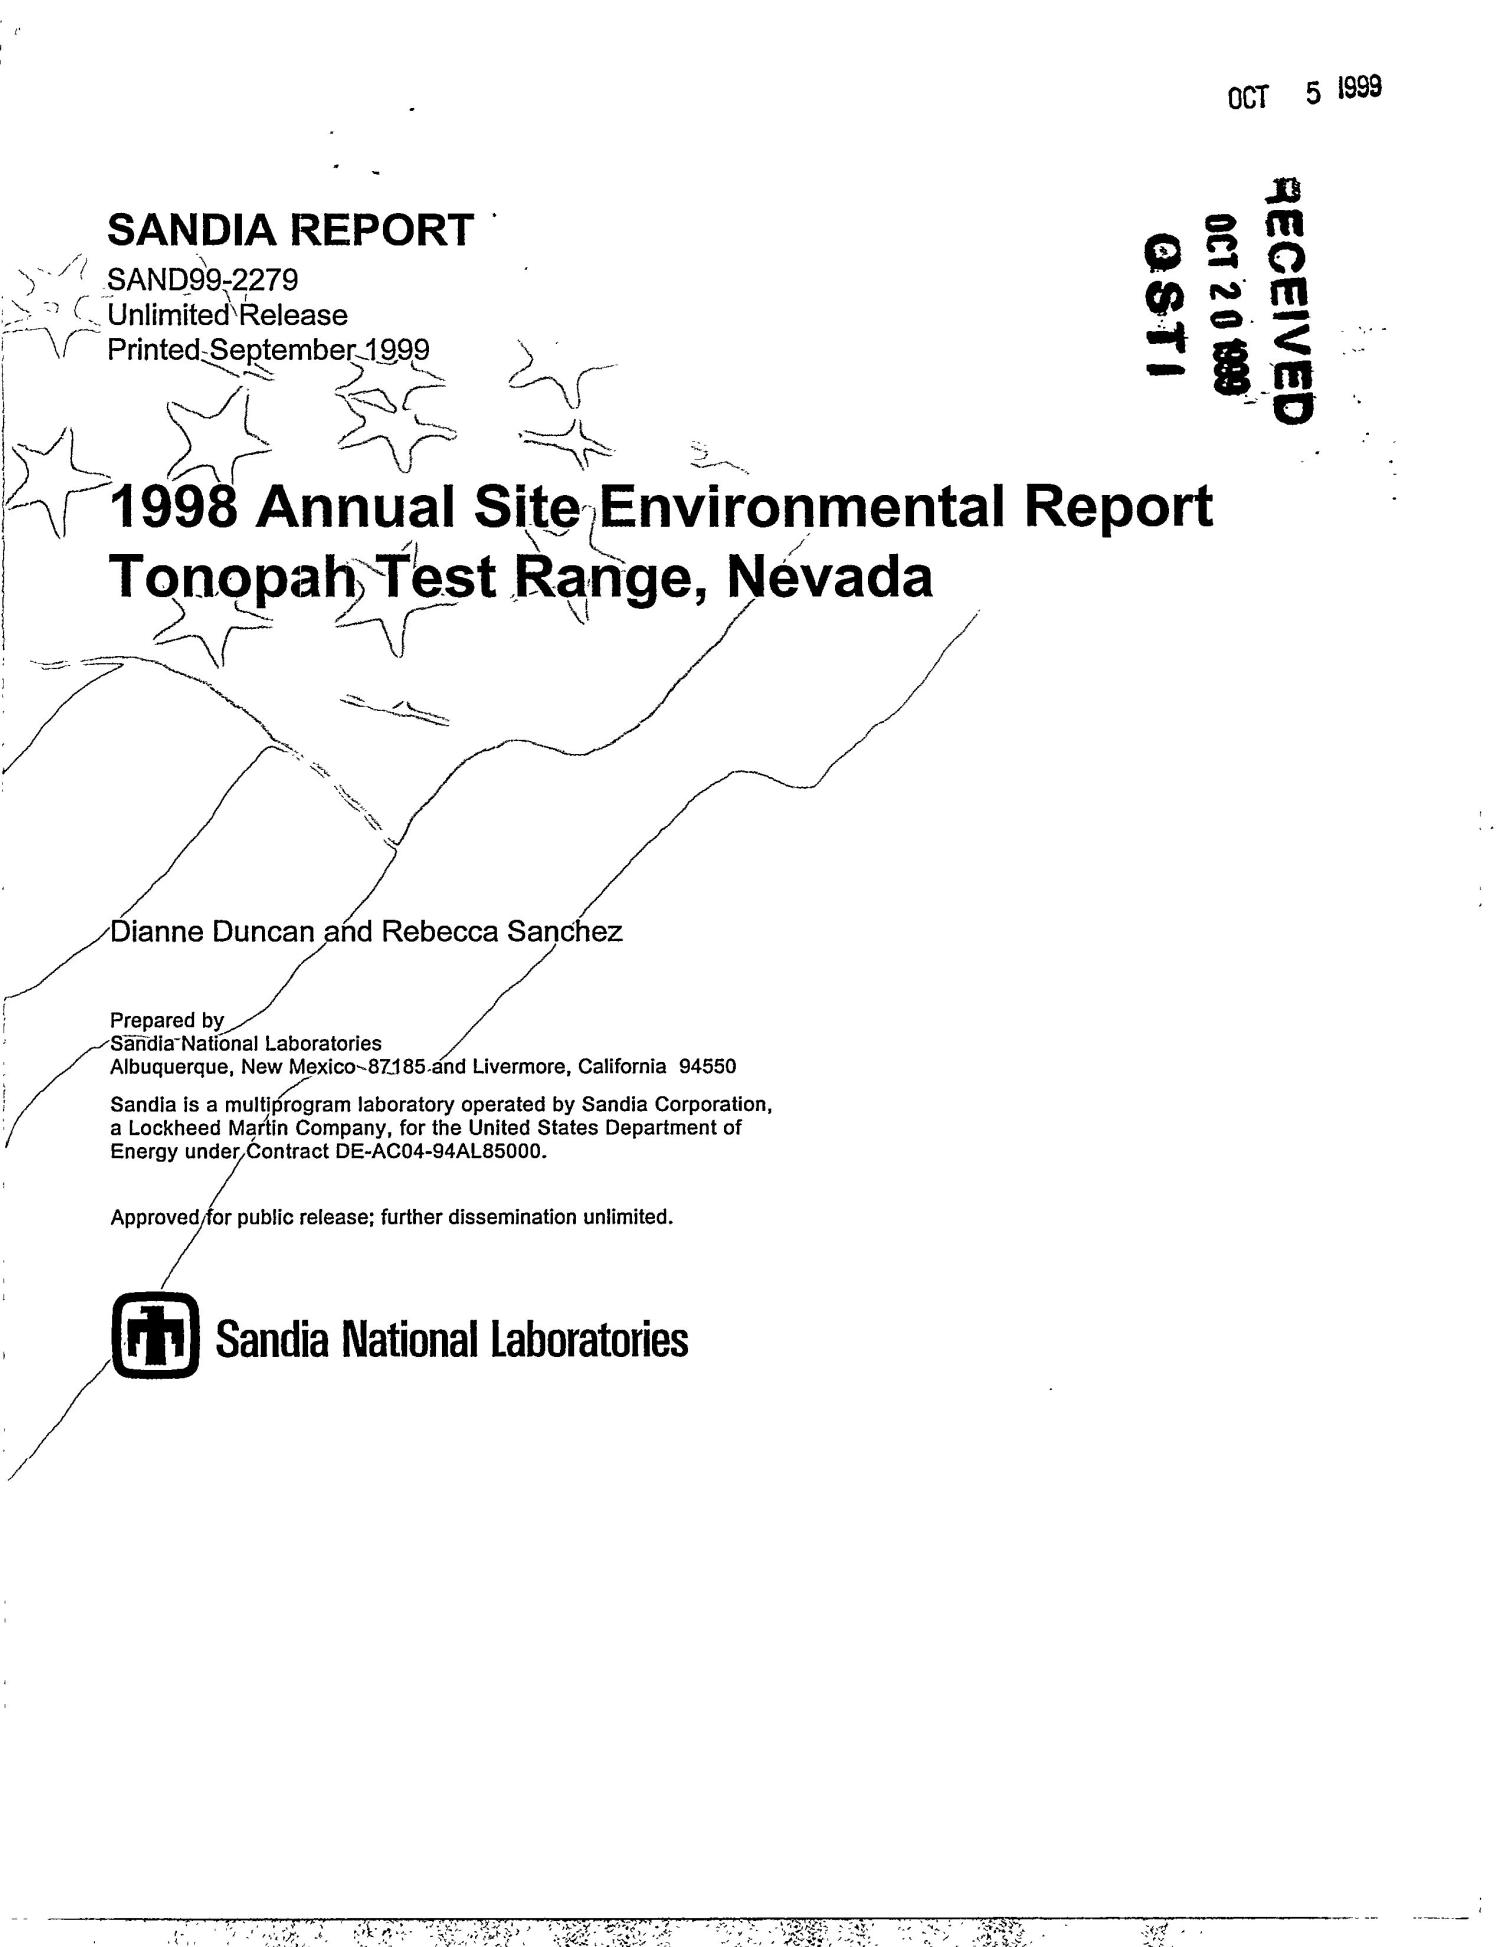 1998 Annual Site Environmental Report Tonopah Test Range, Nevada                                                                                                      [Sequence #]: 1 of 111